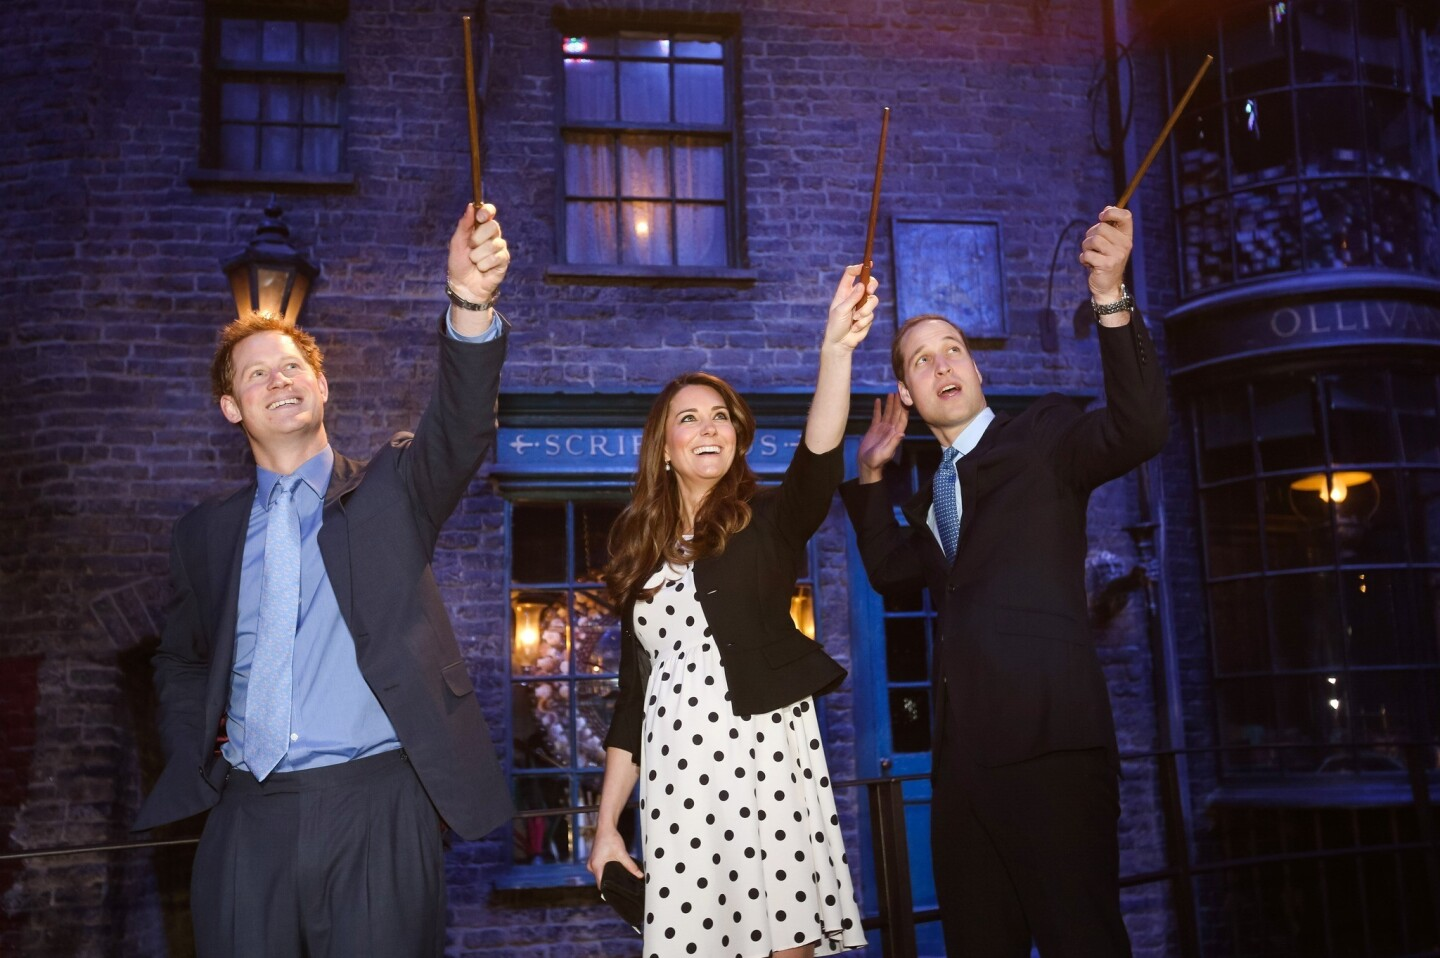 """Prince Harry, Catherine, Duchess of Cambridge, and Prince William raise their wands on the set used to depict Diagon Alley in the """"Harry Potter"""" films during the inauguration of Warner Bros. Studios Leavesden on April 26, 2013, in London."""